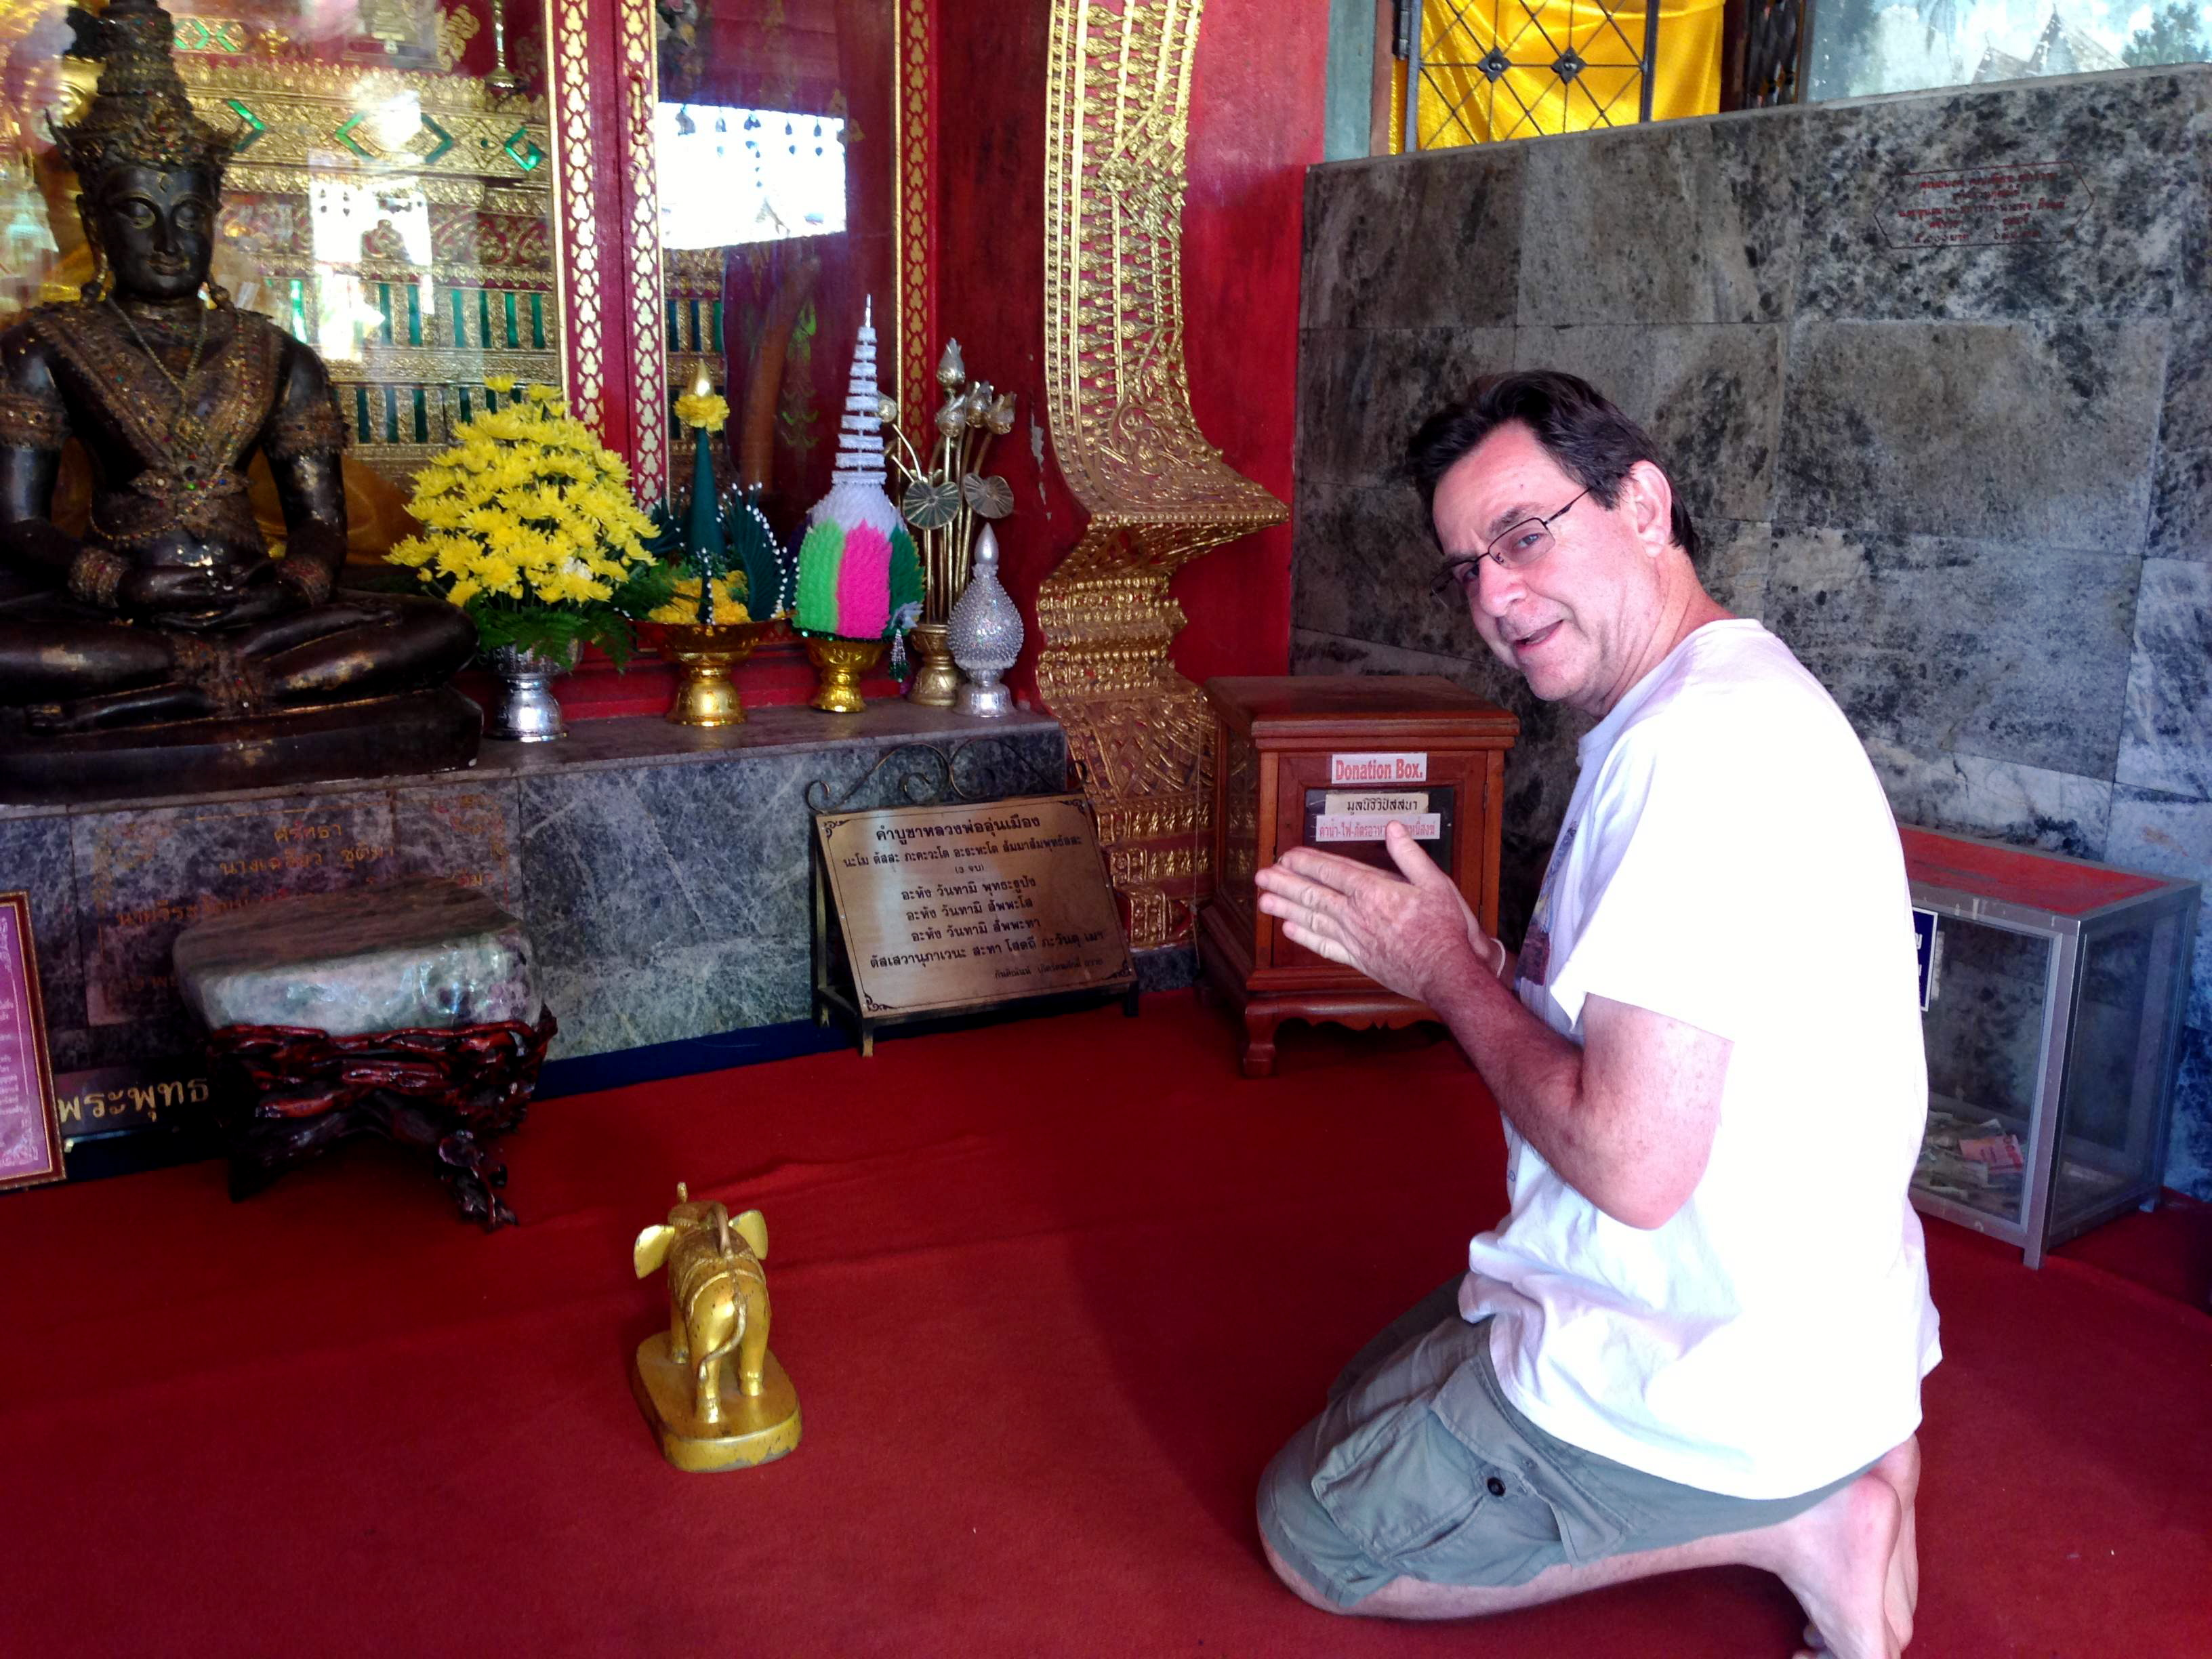 Daveo practicing his wai at Wat Doi Suthep in Chiang Mai, Thailand